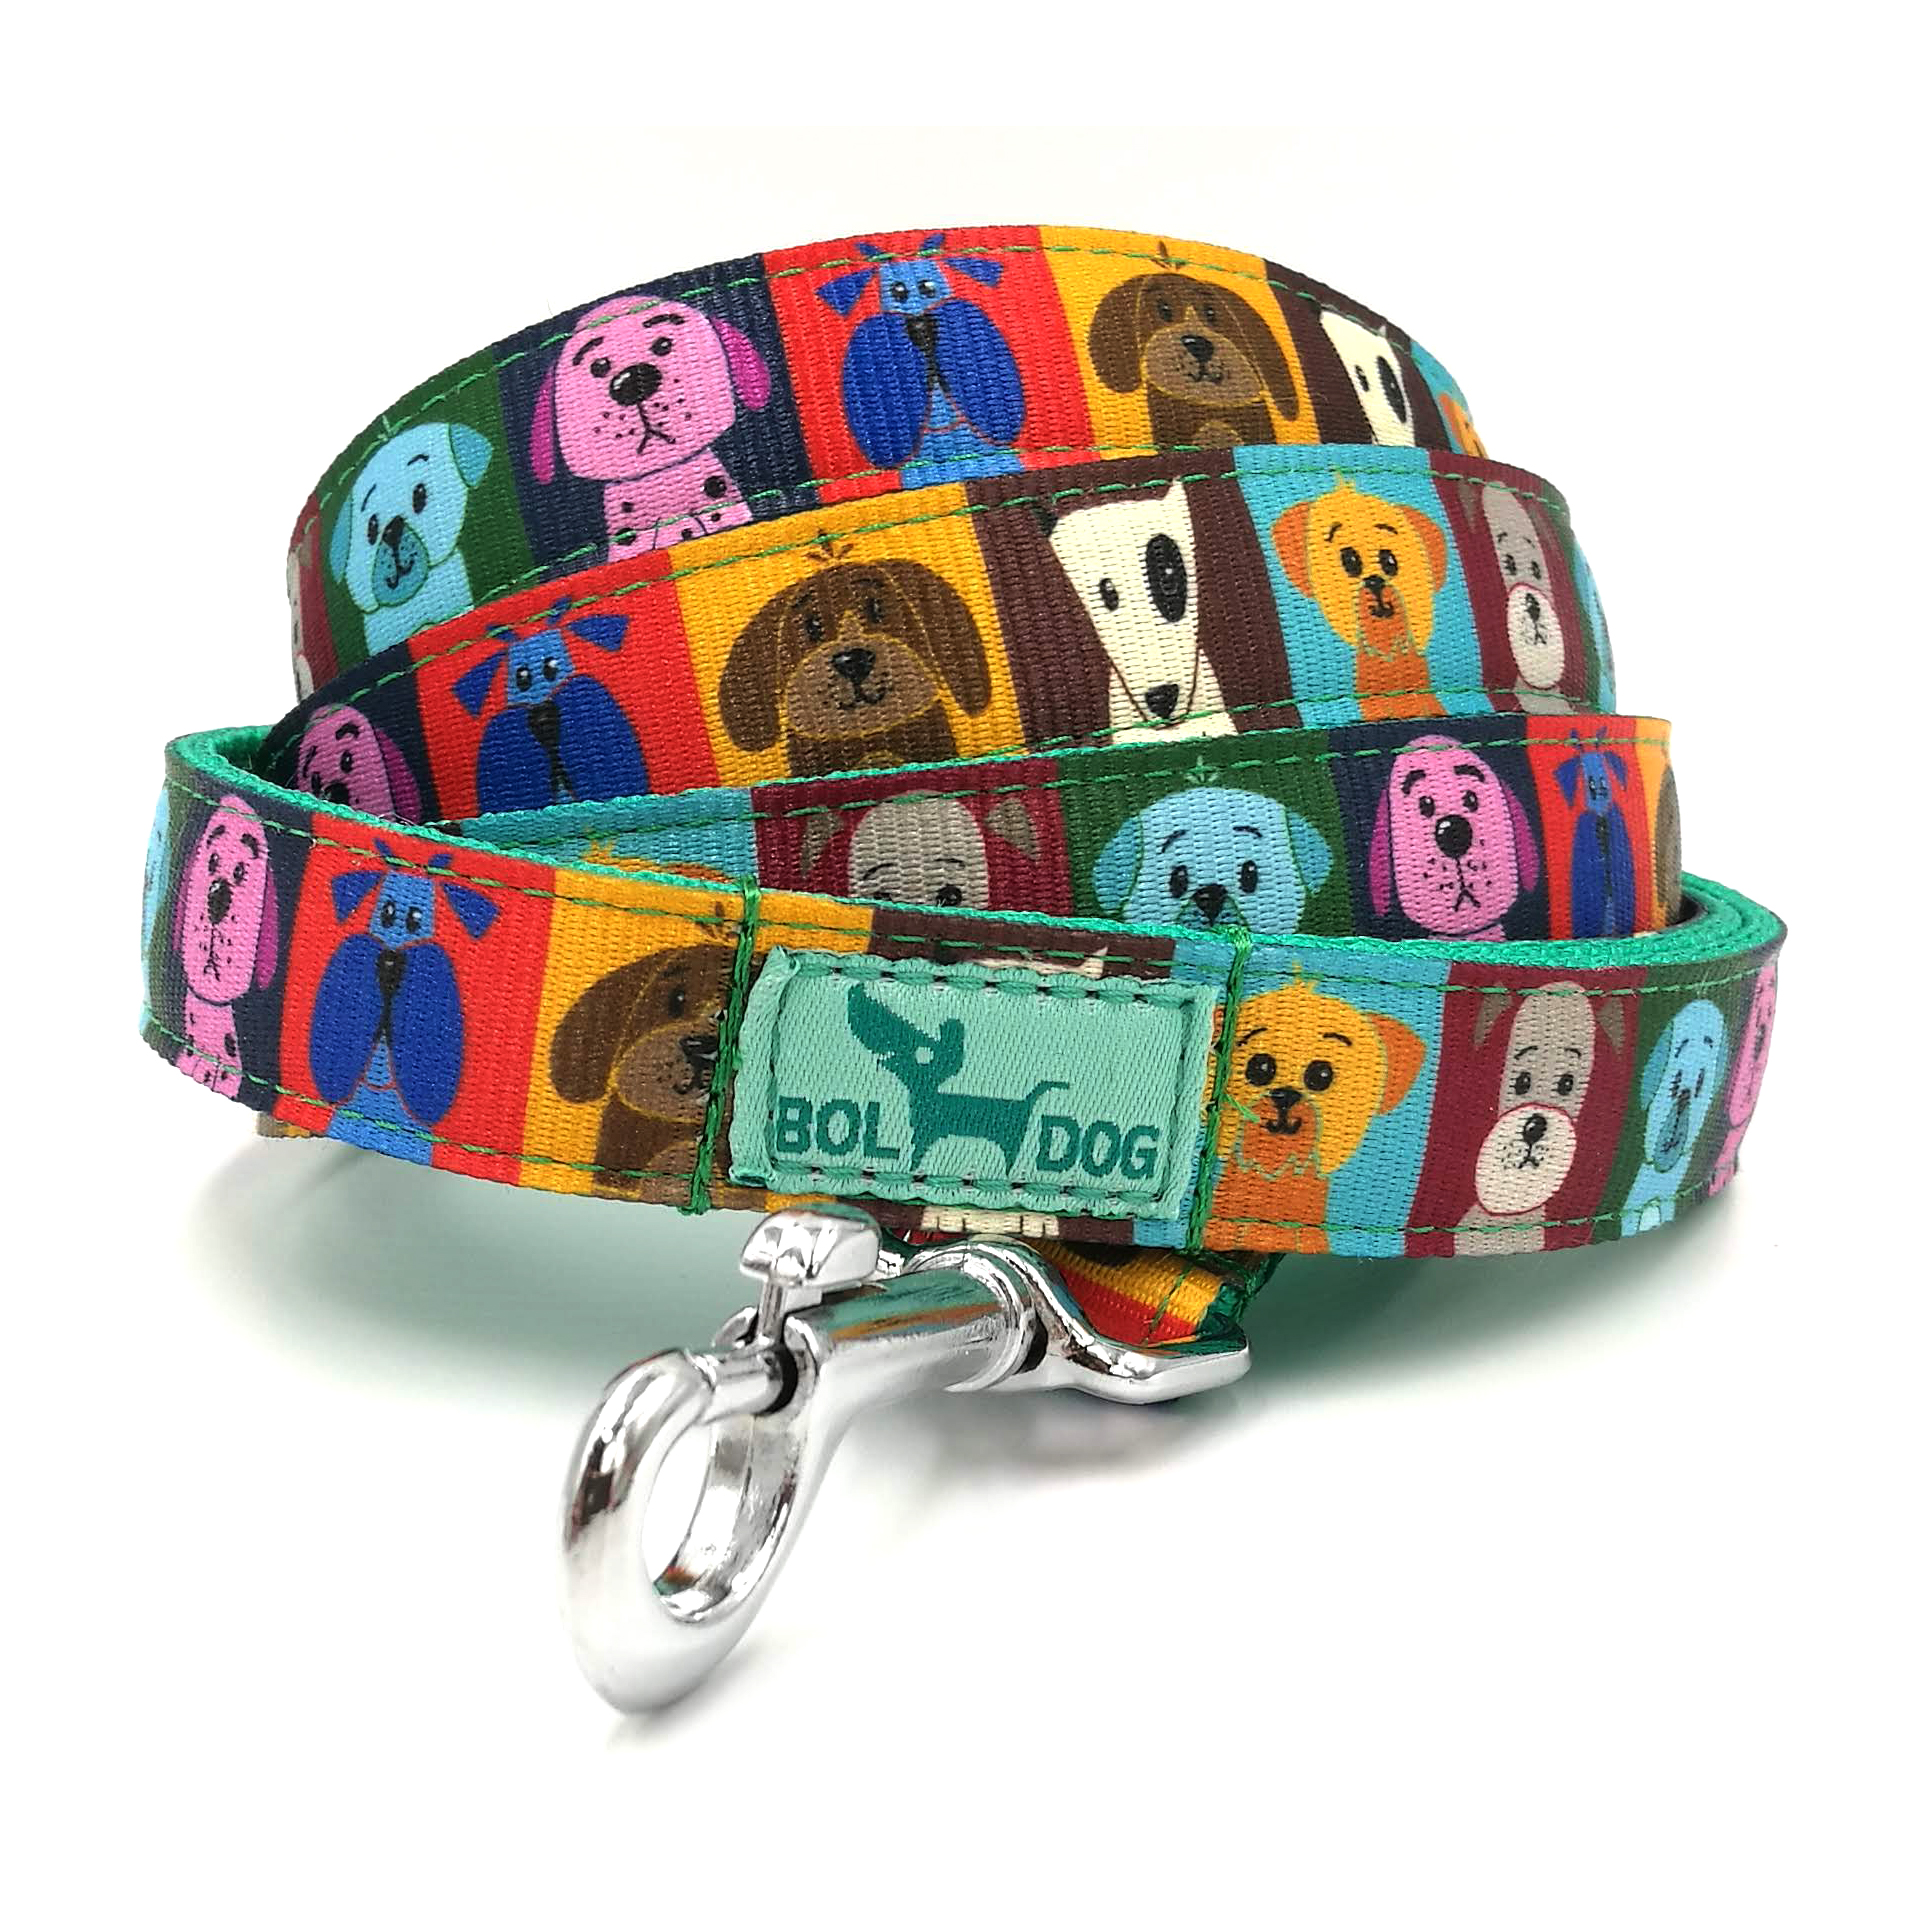 Dog school dog leash